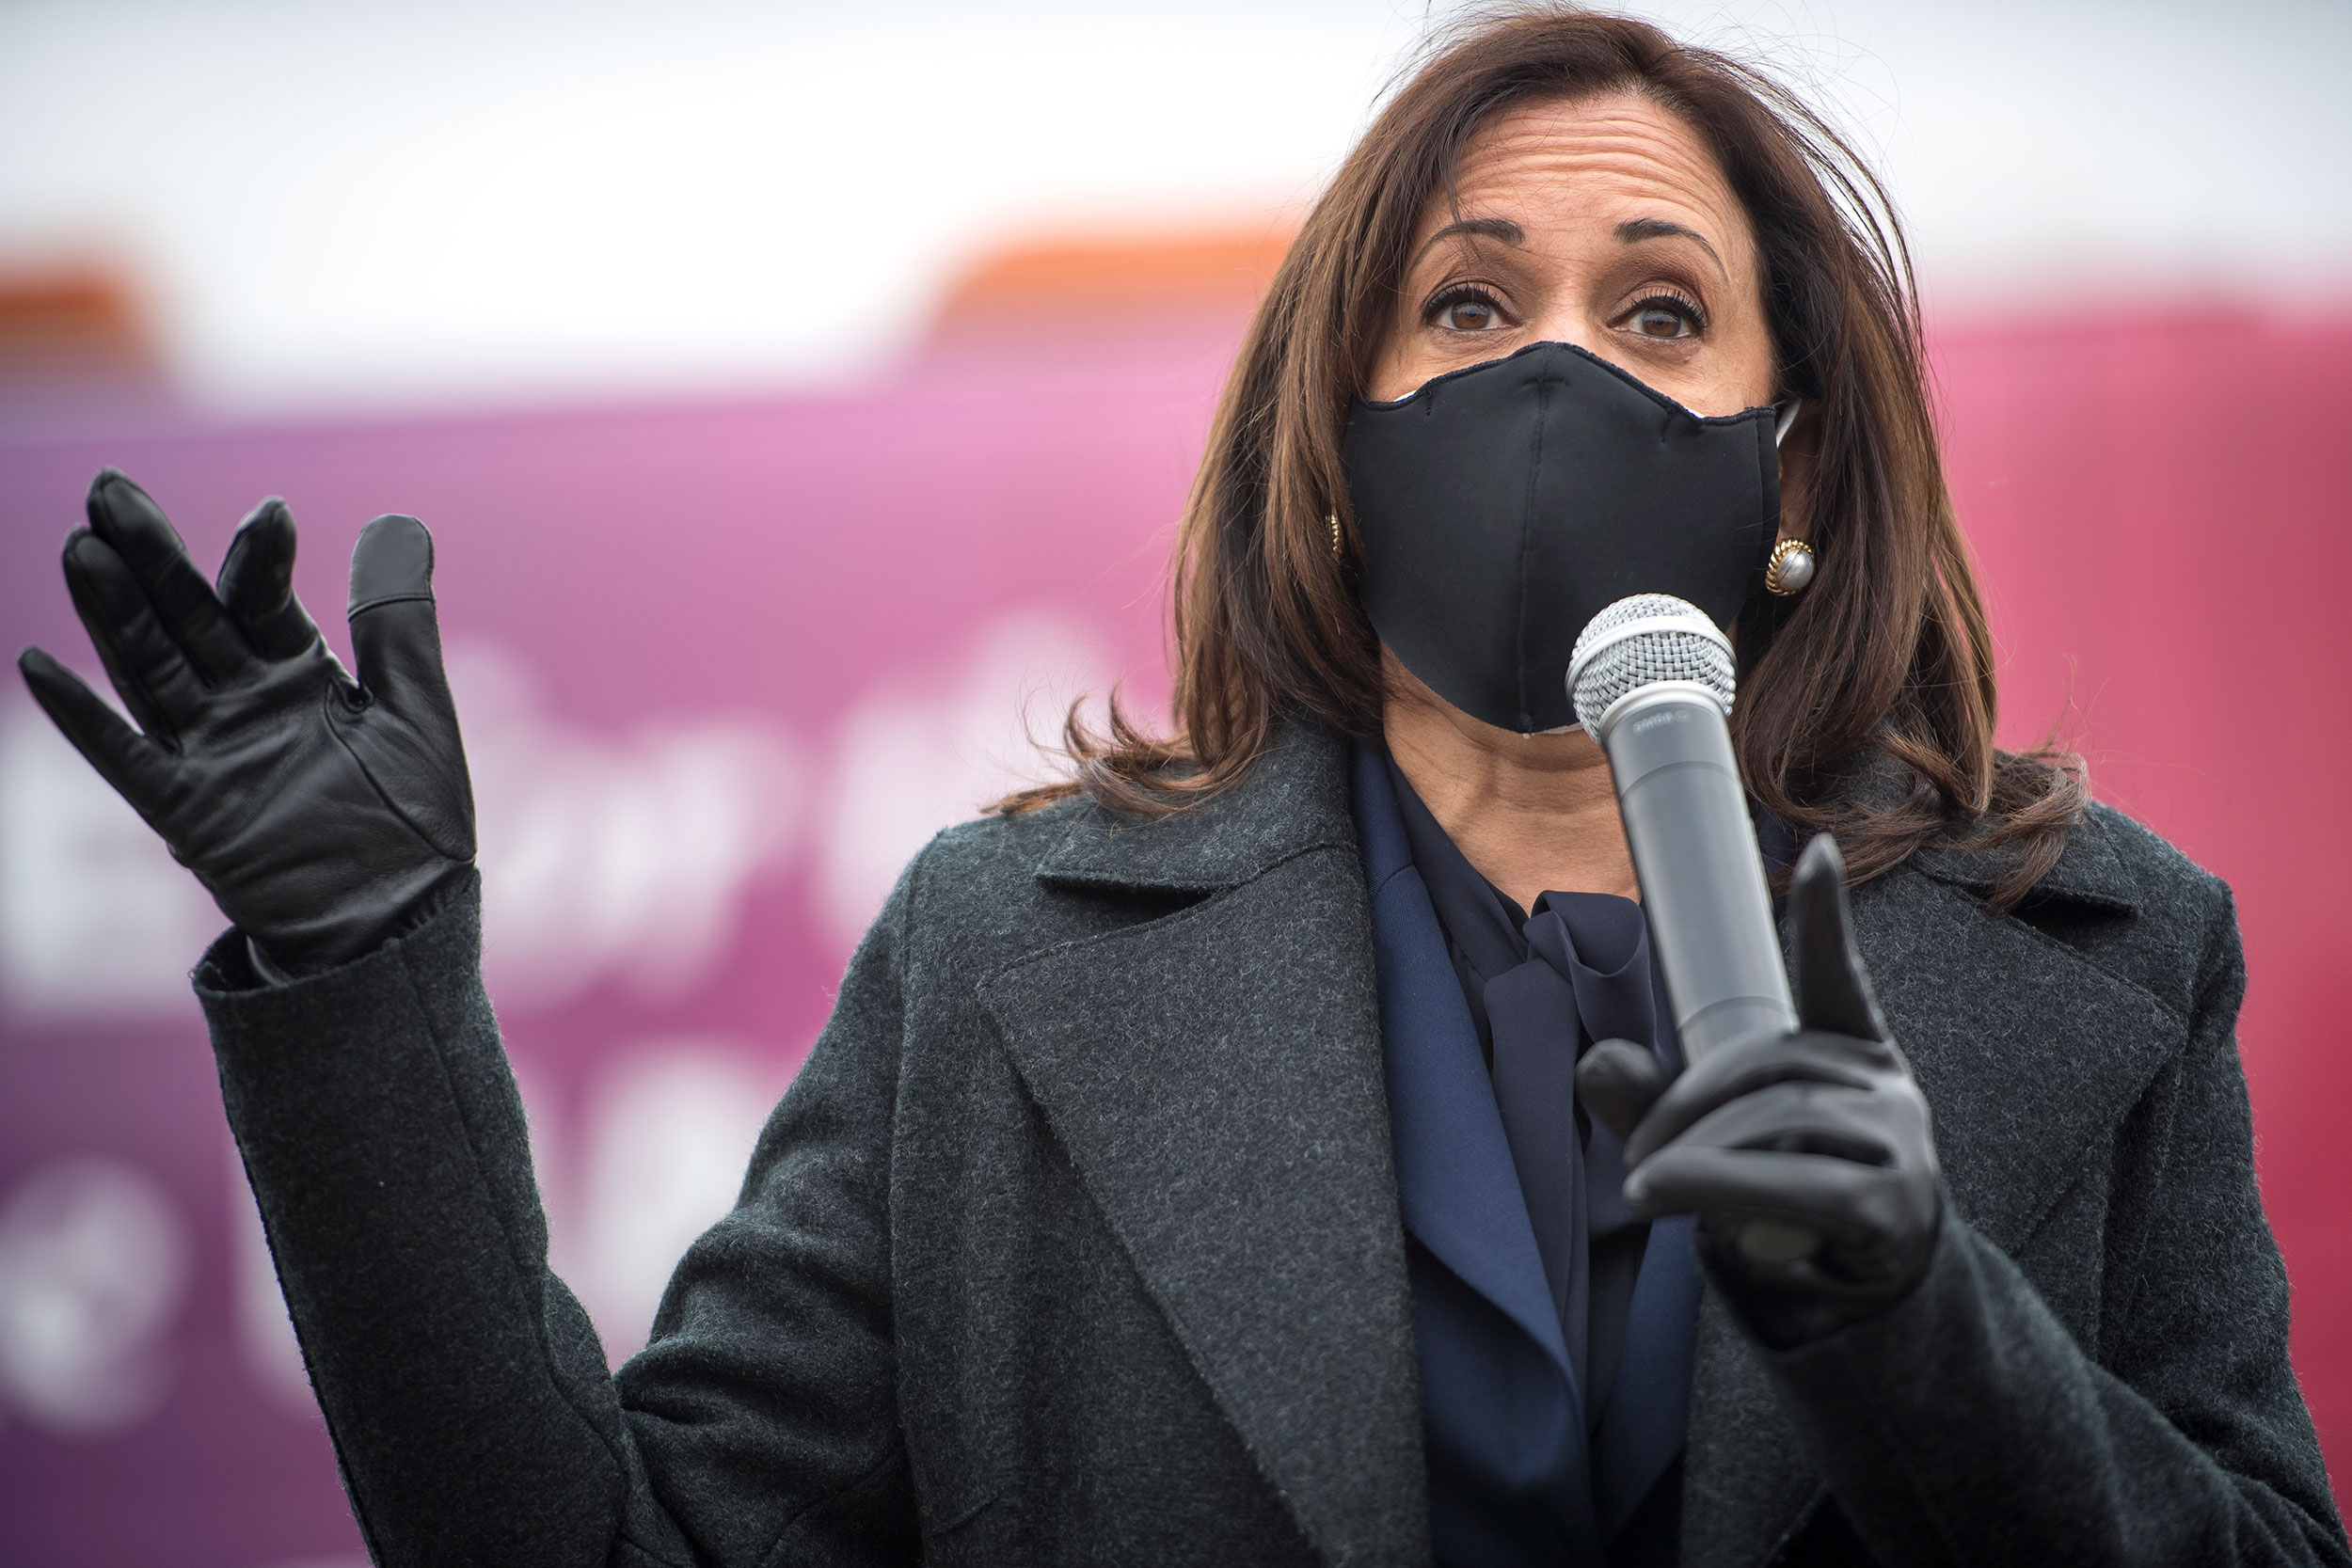 Democratic vice presidential nominee Kamala Harris speaks at a campaign event on October 25 in Detroit, Michigan.